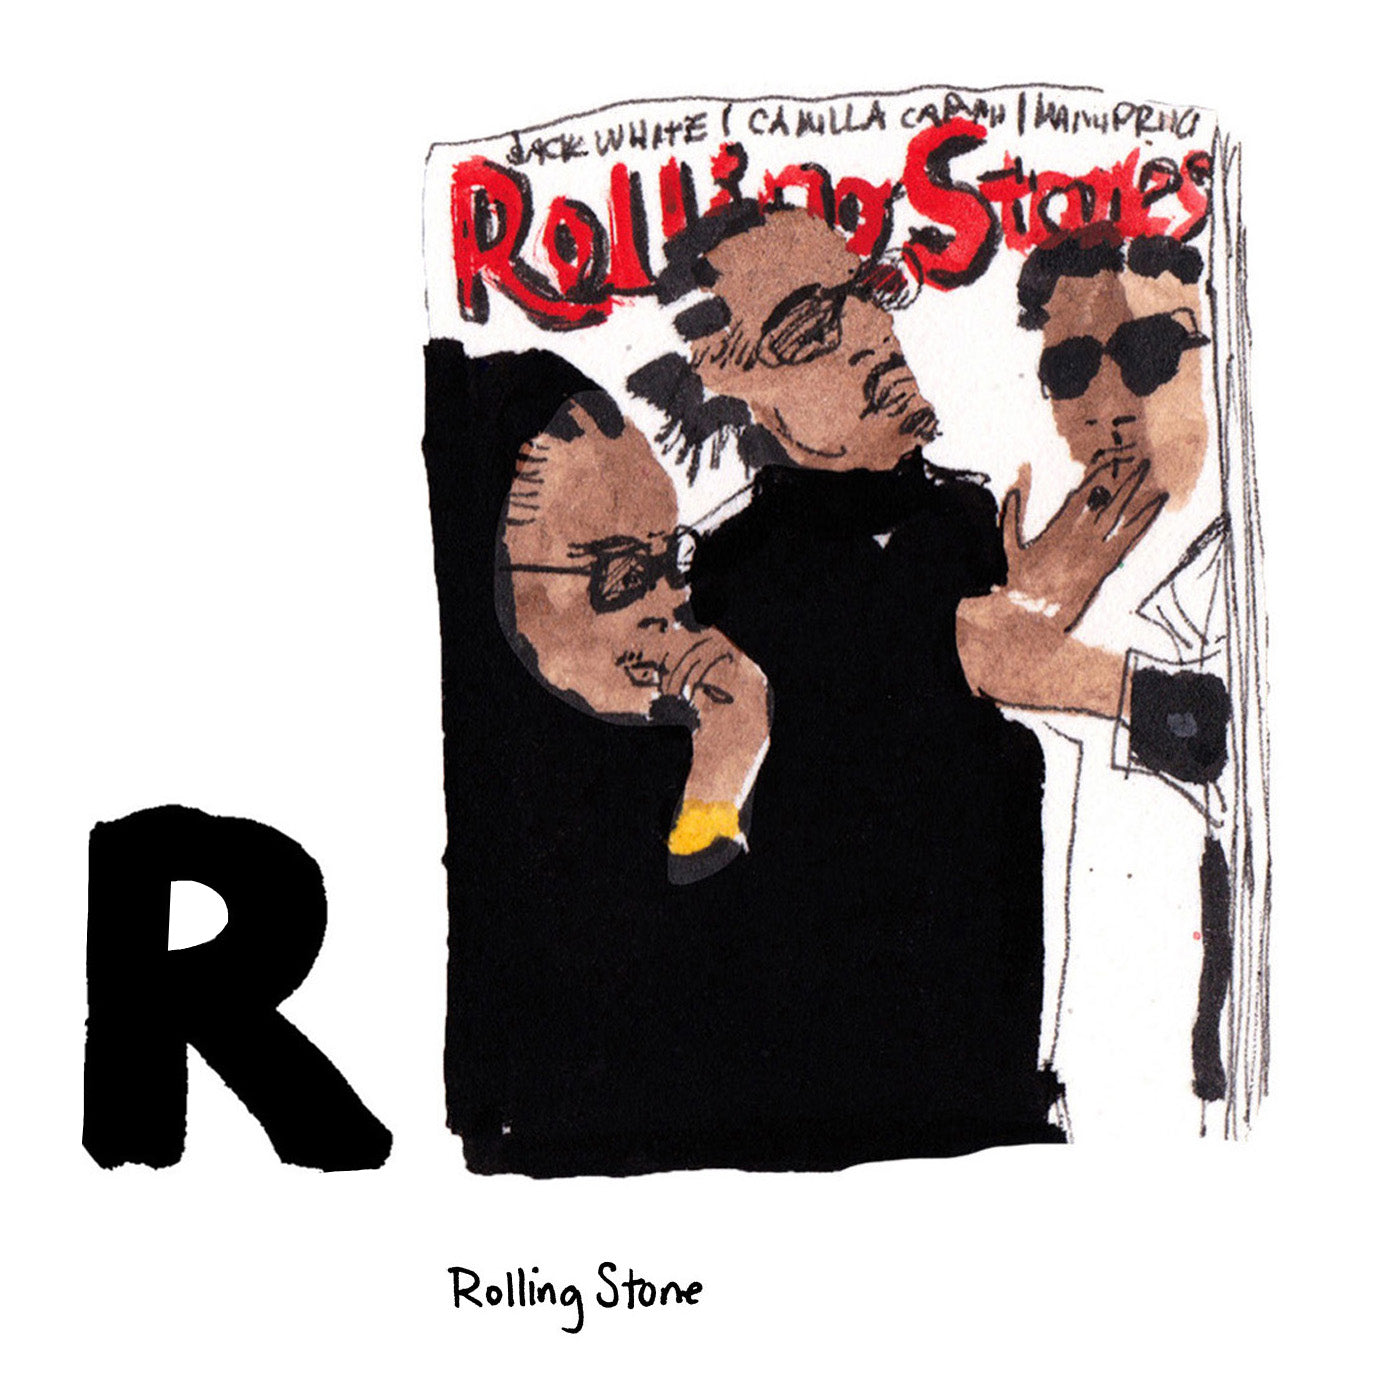 R is for Rolling Stone. Rolling Stone Magazine was founded in San Francisco in 1967. Its coverage of the arts, music, pop culture, and politics has been hugely influential over the decades.